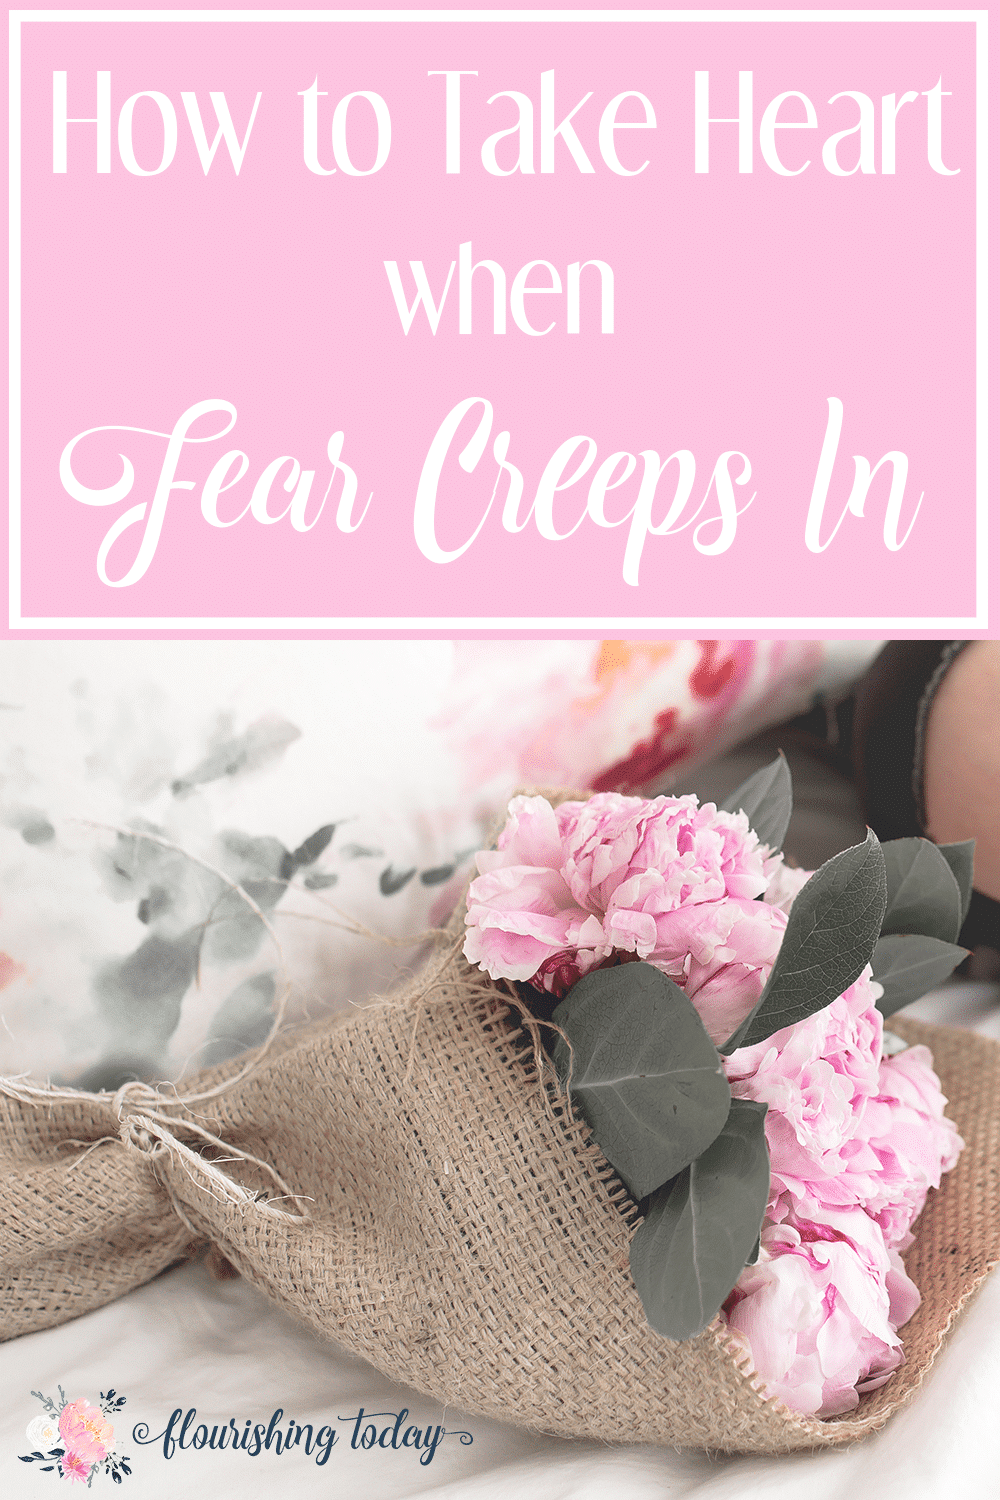 What fears are you facing? Not sure how to conquer them? Here's 6 Ways to Take Heart When Fear Creeps In. Grab Your Free Printable!